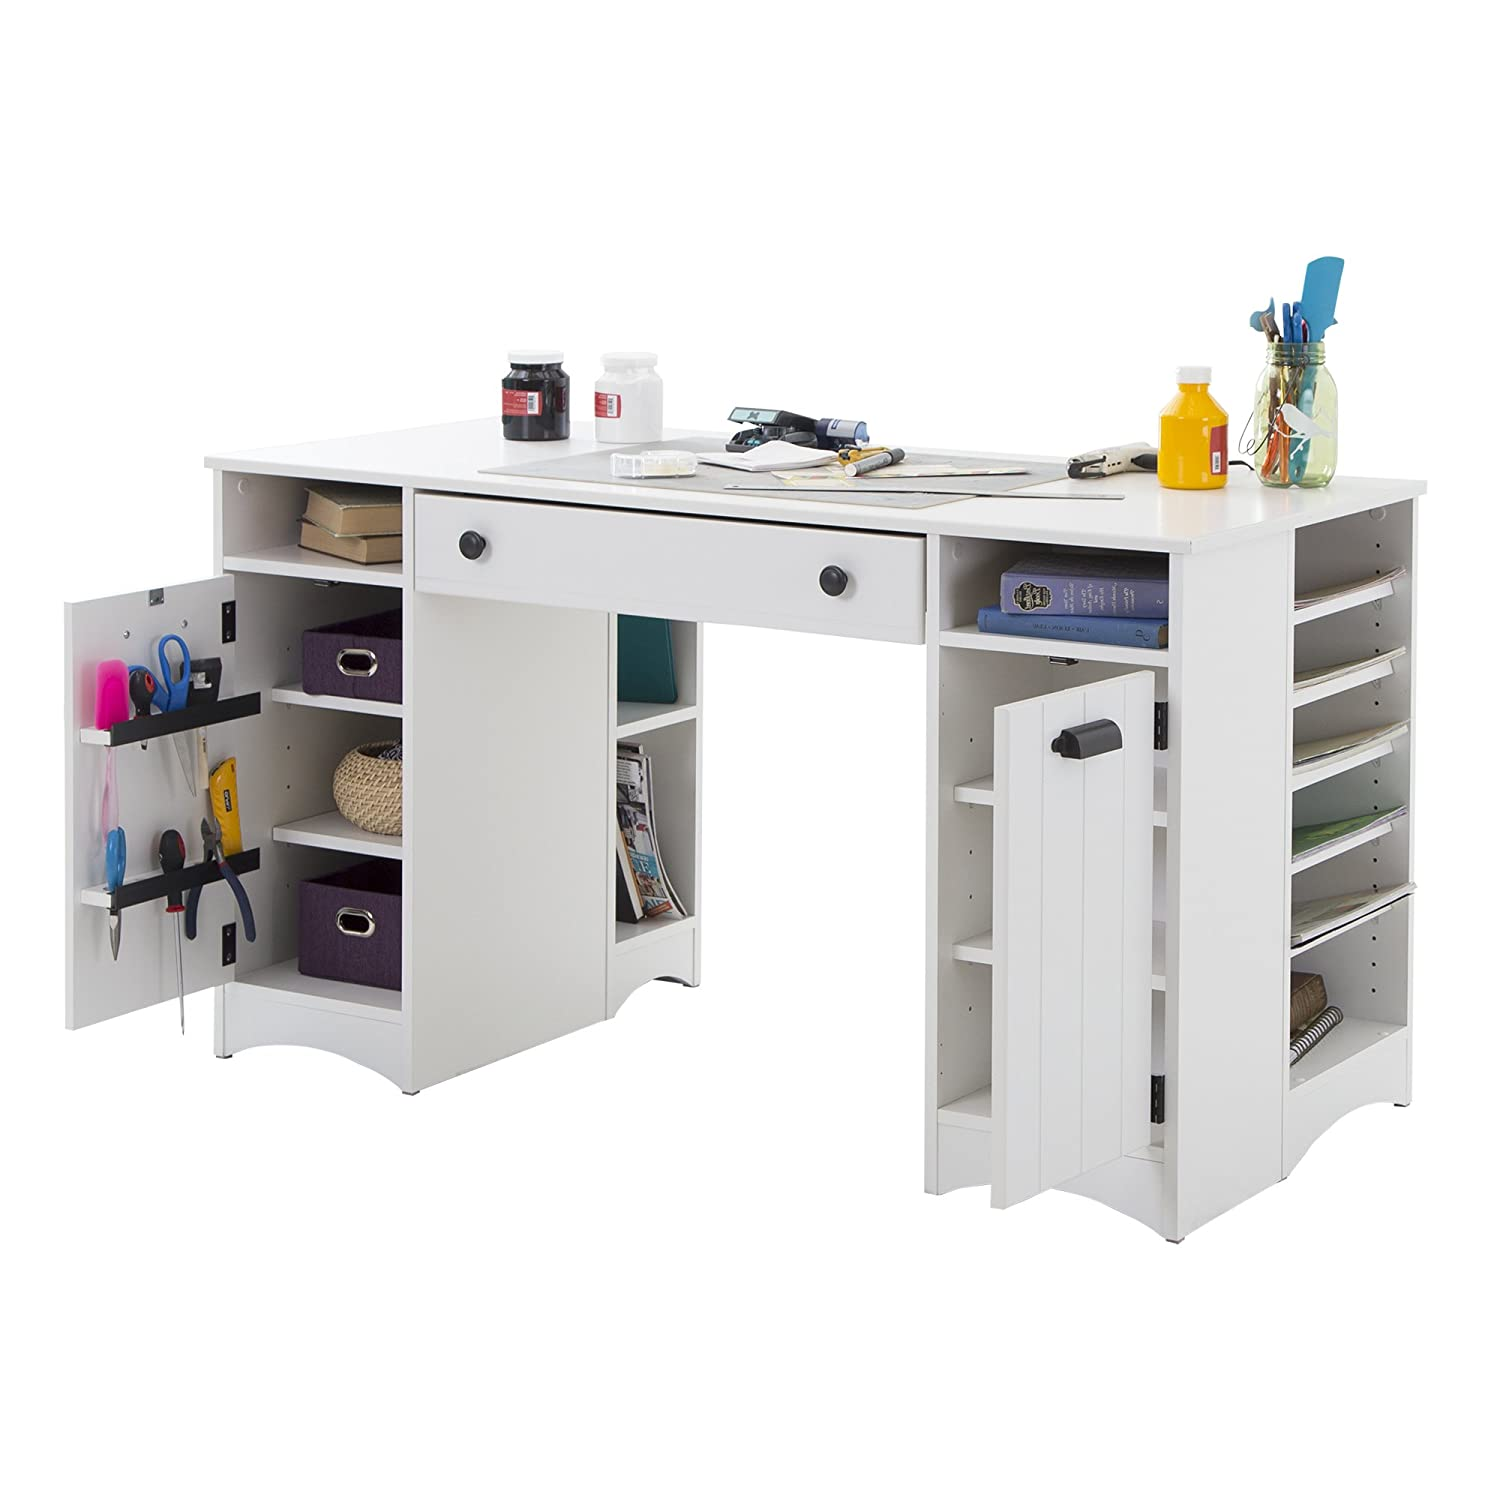 Amazon Artwork Craft Table with Storage Work Surface